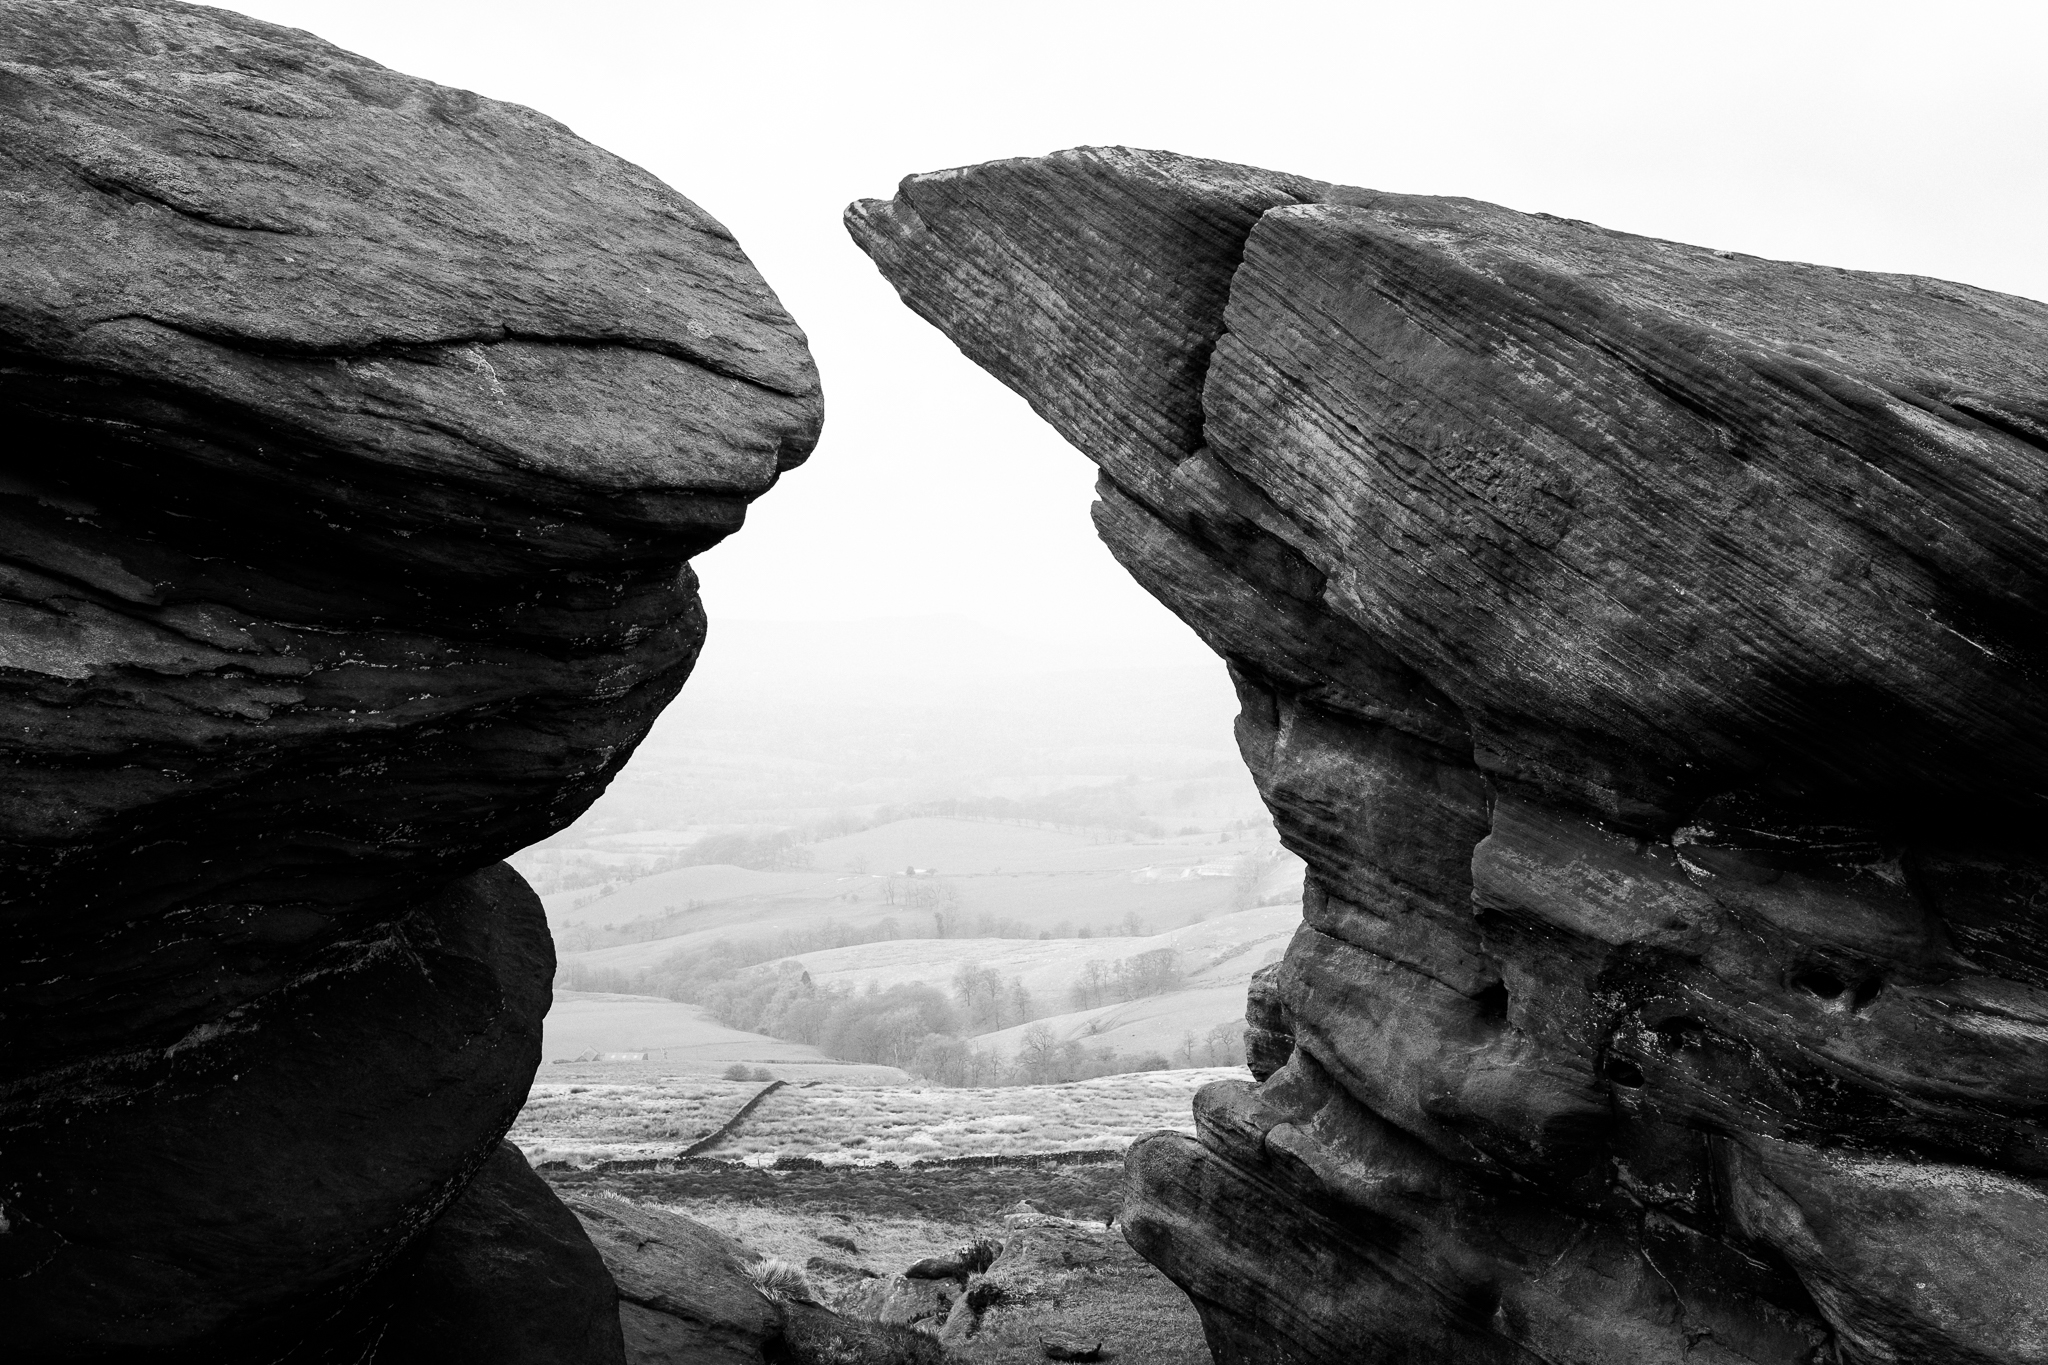 03.23.2017 Photowalk with Get Some Fresh Air The Roaches and Lud's Church Ludchurch Staffordshire Upper Hulme Ridge Rocks-20.jpg